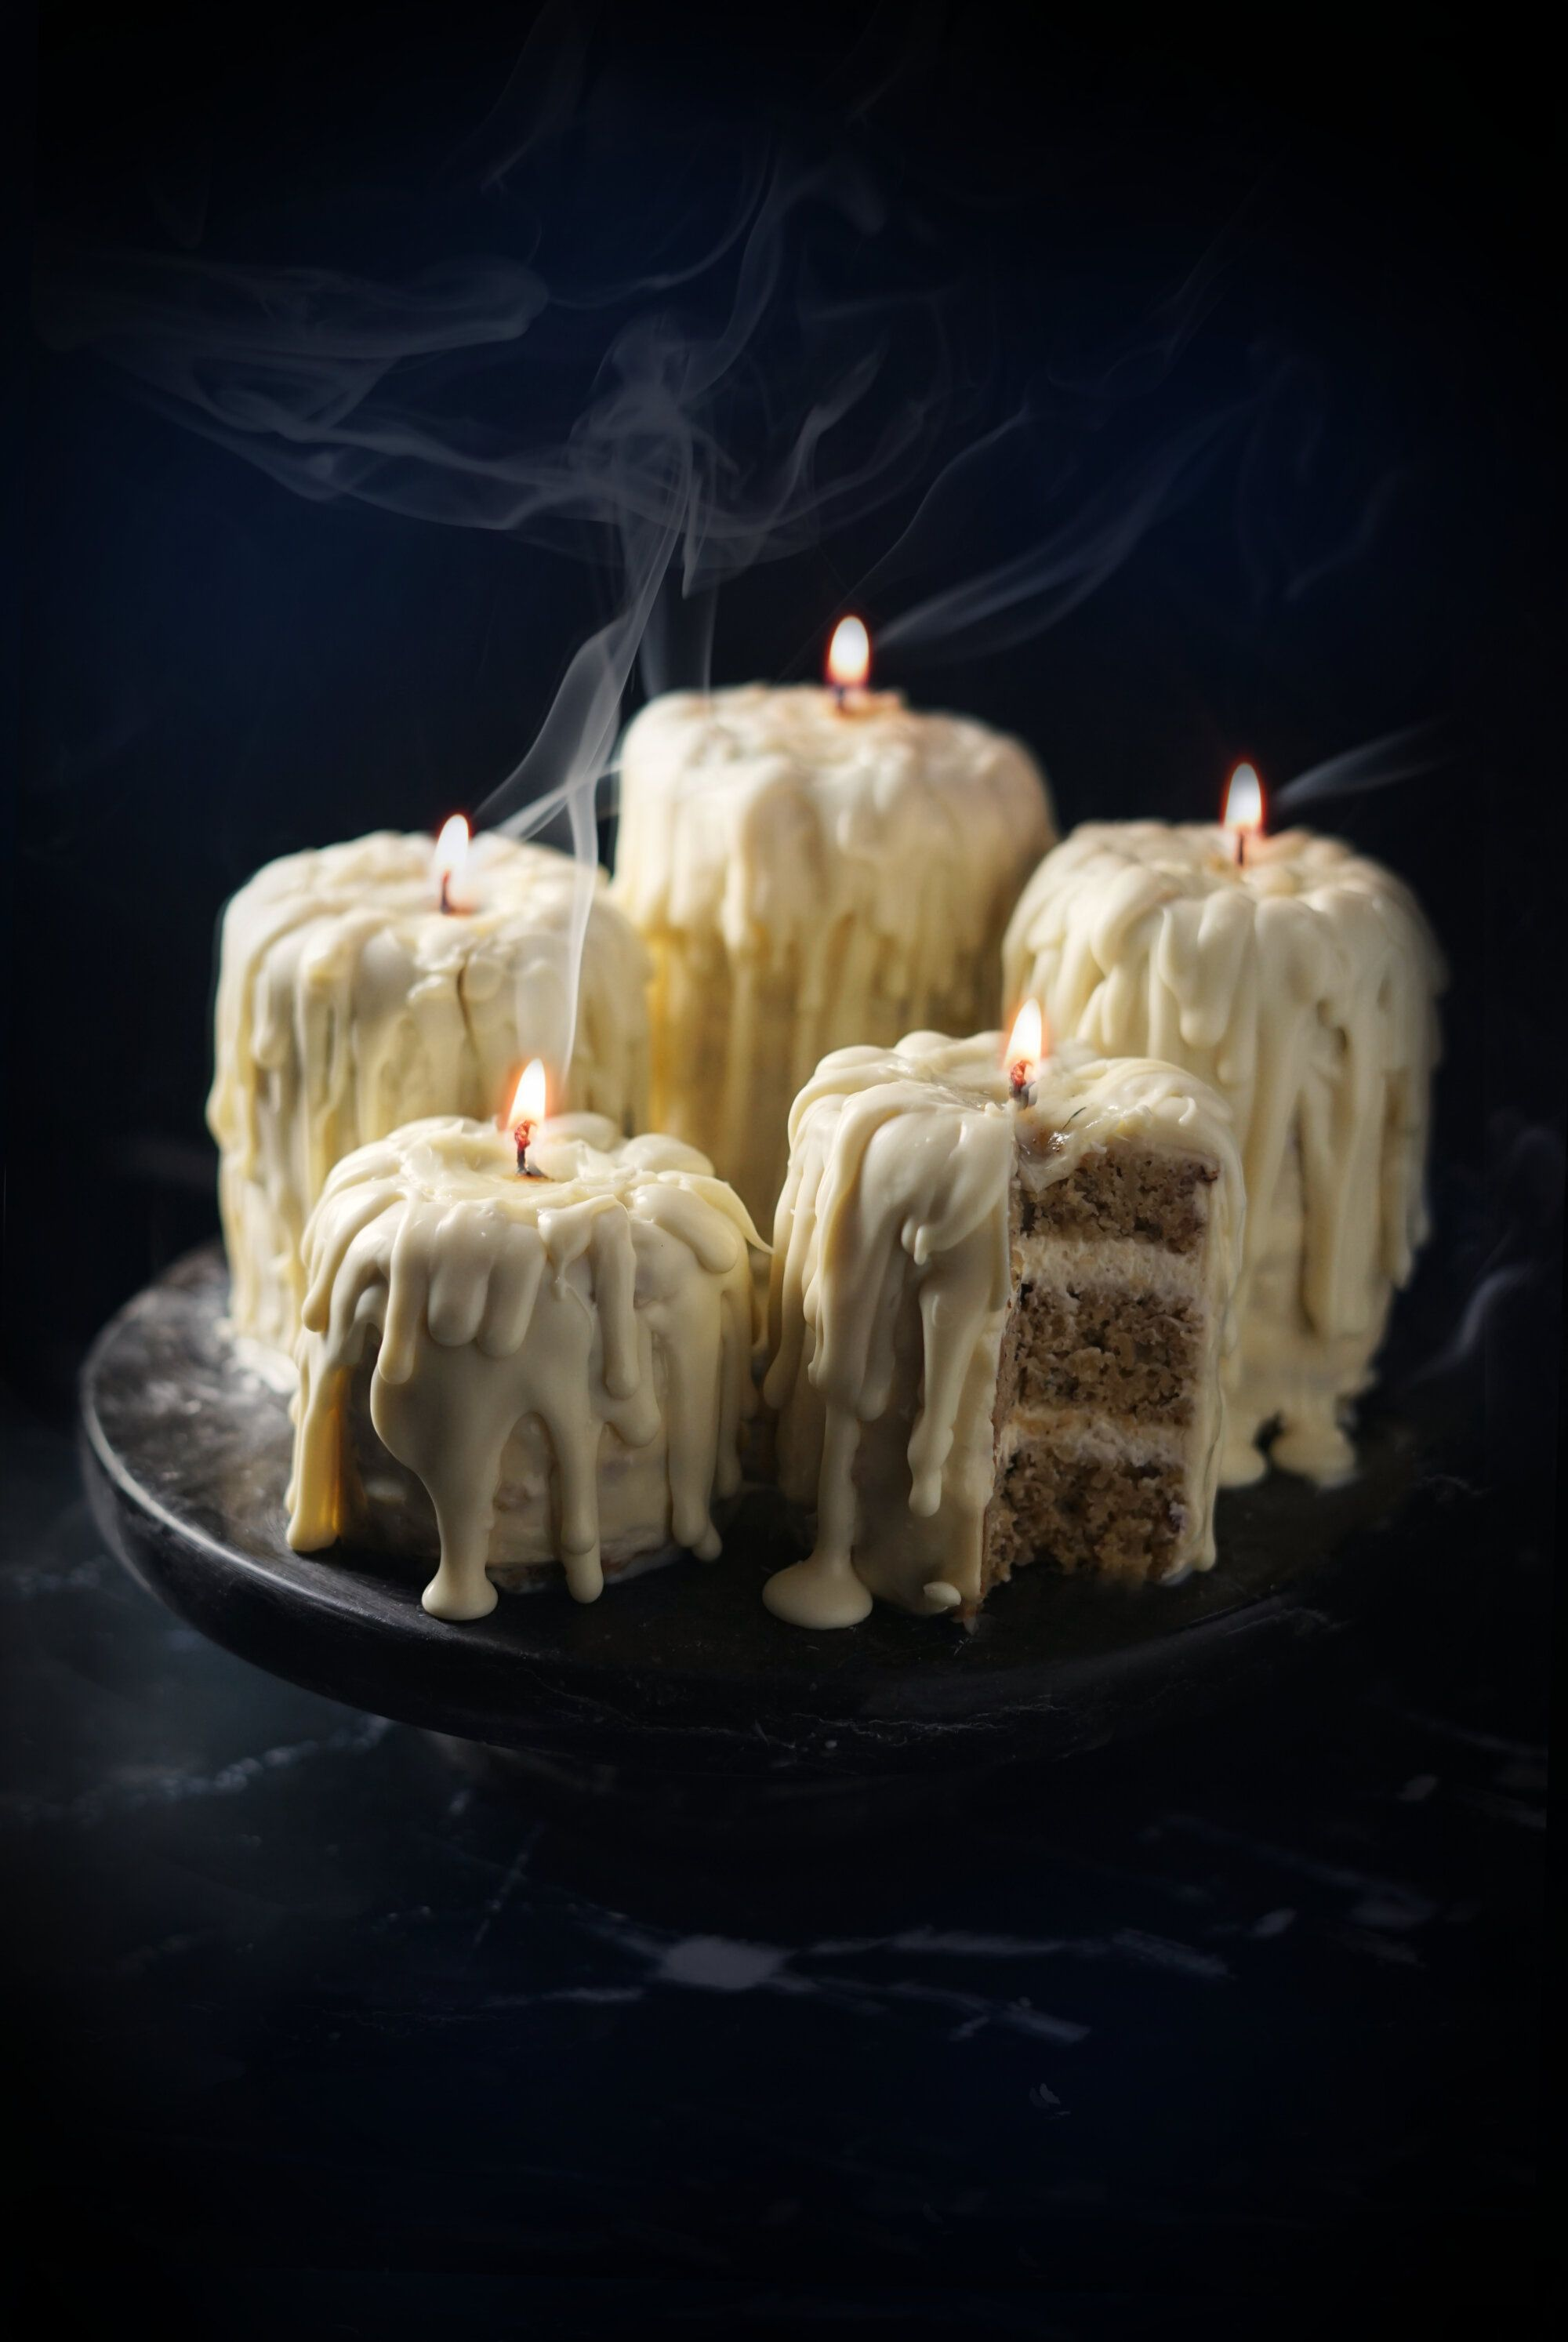 Photo of Beeswax-Infused Parsnip Candle Cakes: A Time For Illumination  — The Wondersmith